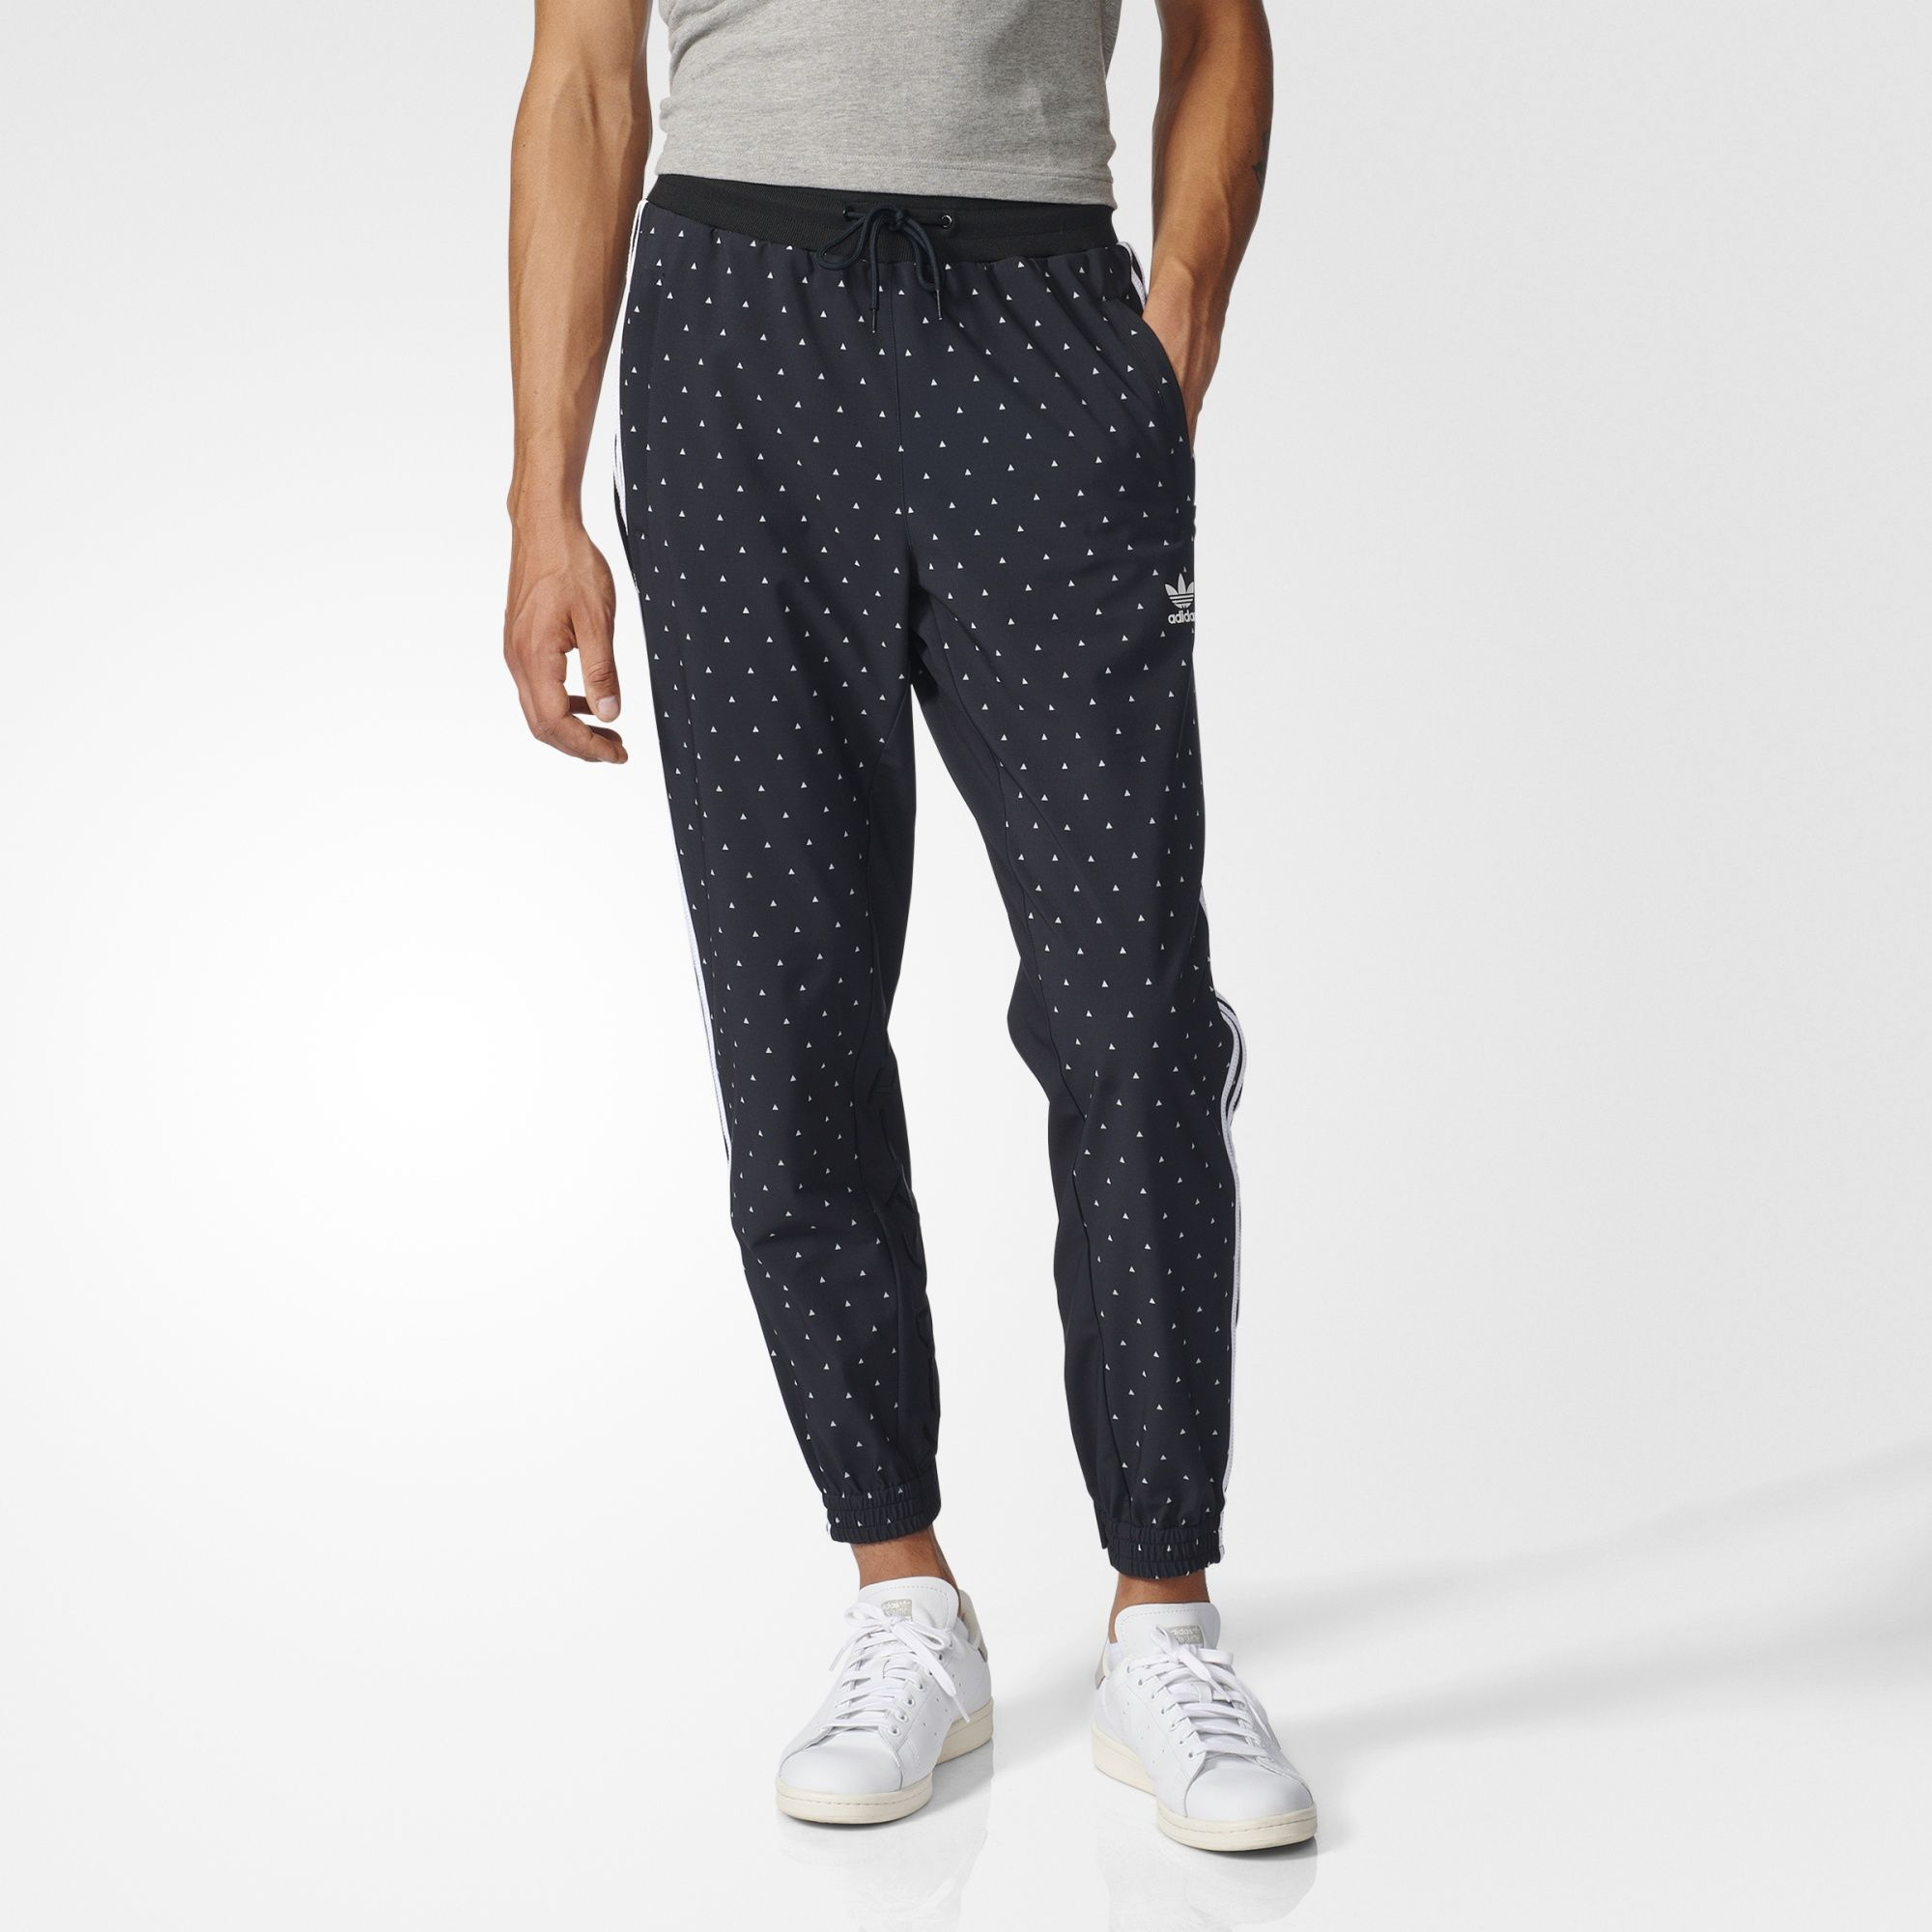 adidas - Pharrell Williams HU Carrot Pants